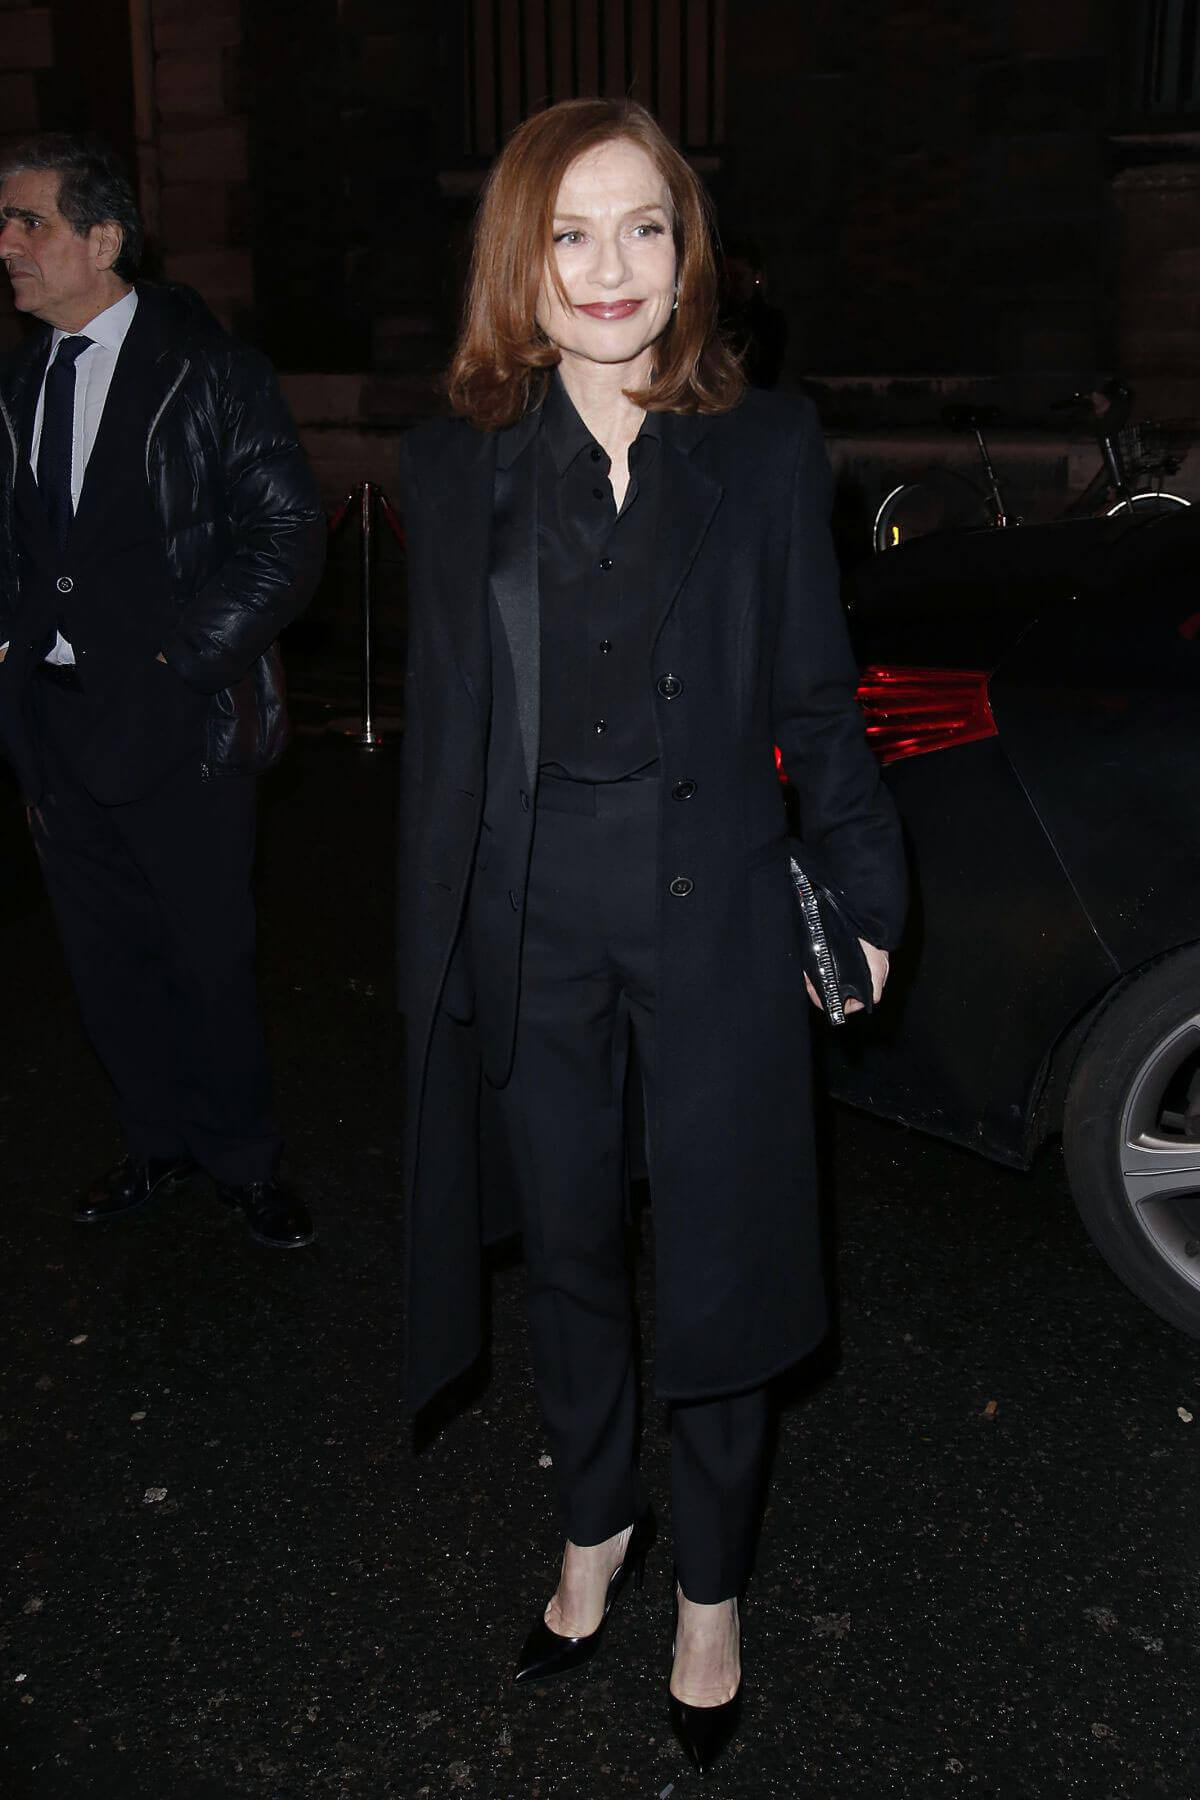 Isabelle Huppert Stills at L'Oreal Dinner in Paris 1